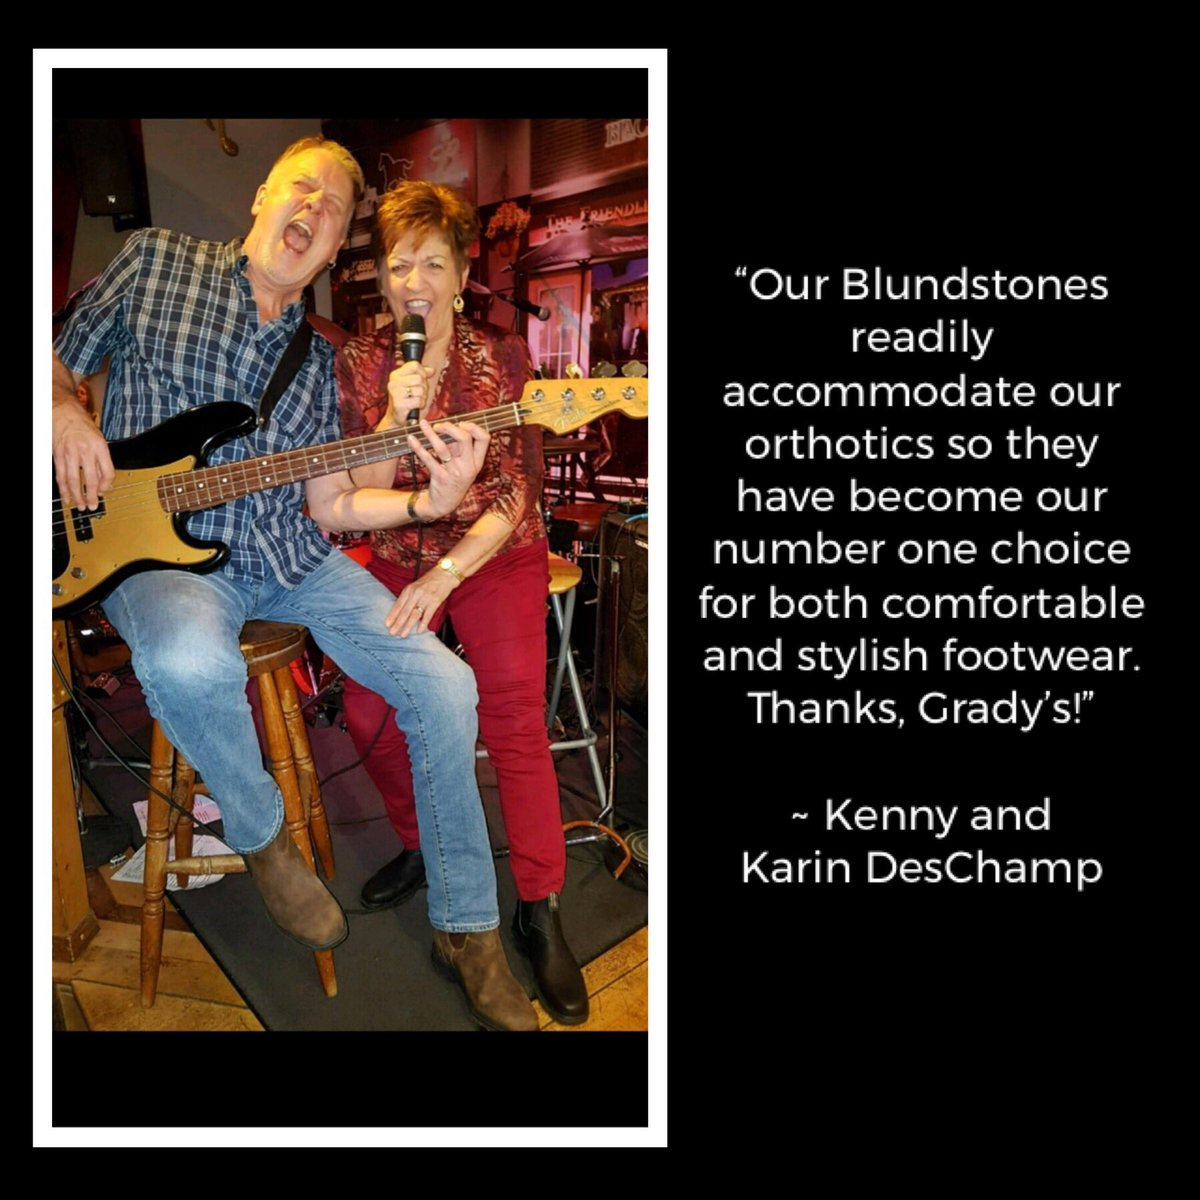 test Twitter Media - Kenny & Karin know what they are talking about! #Blundstone boots look great AND can accommodate #orthotics 👍😀  📸 Photo credit: Mark Beatty #gradyphotocontest #Blundstone @blundstoneca #orthoticfriendlyfootwear @LansdownePlace #ptbo https://t.co/YUlQuU3Ub0